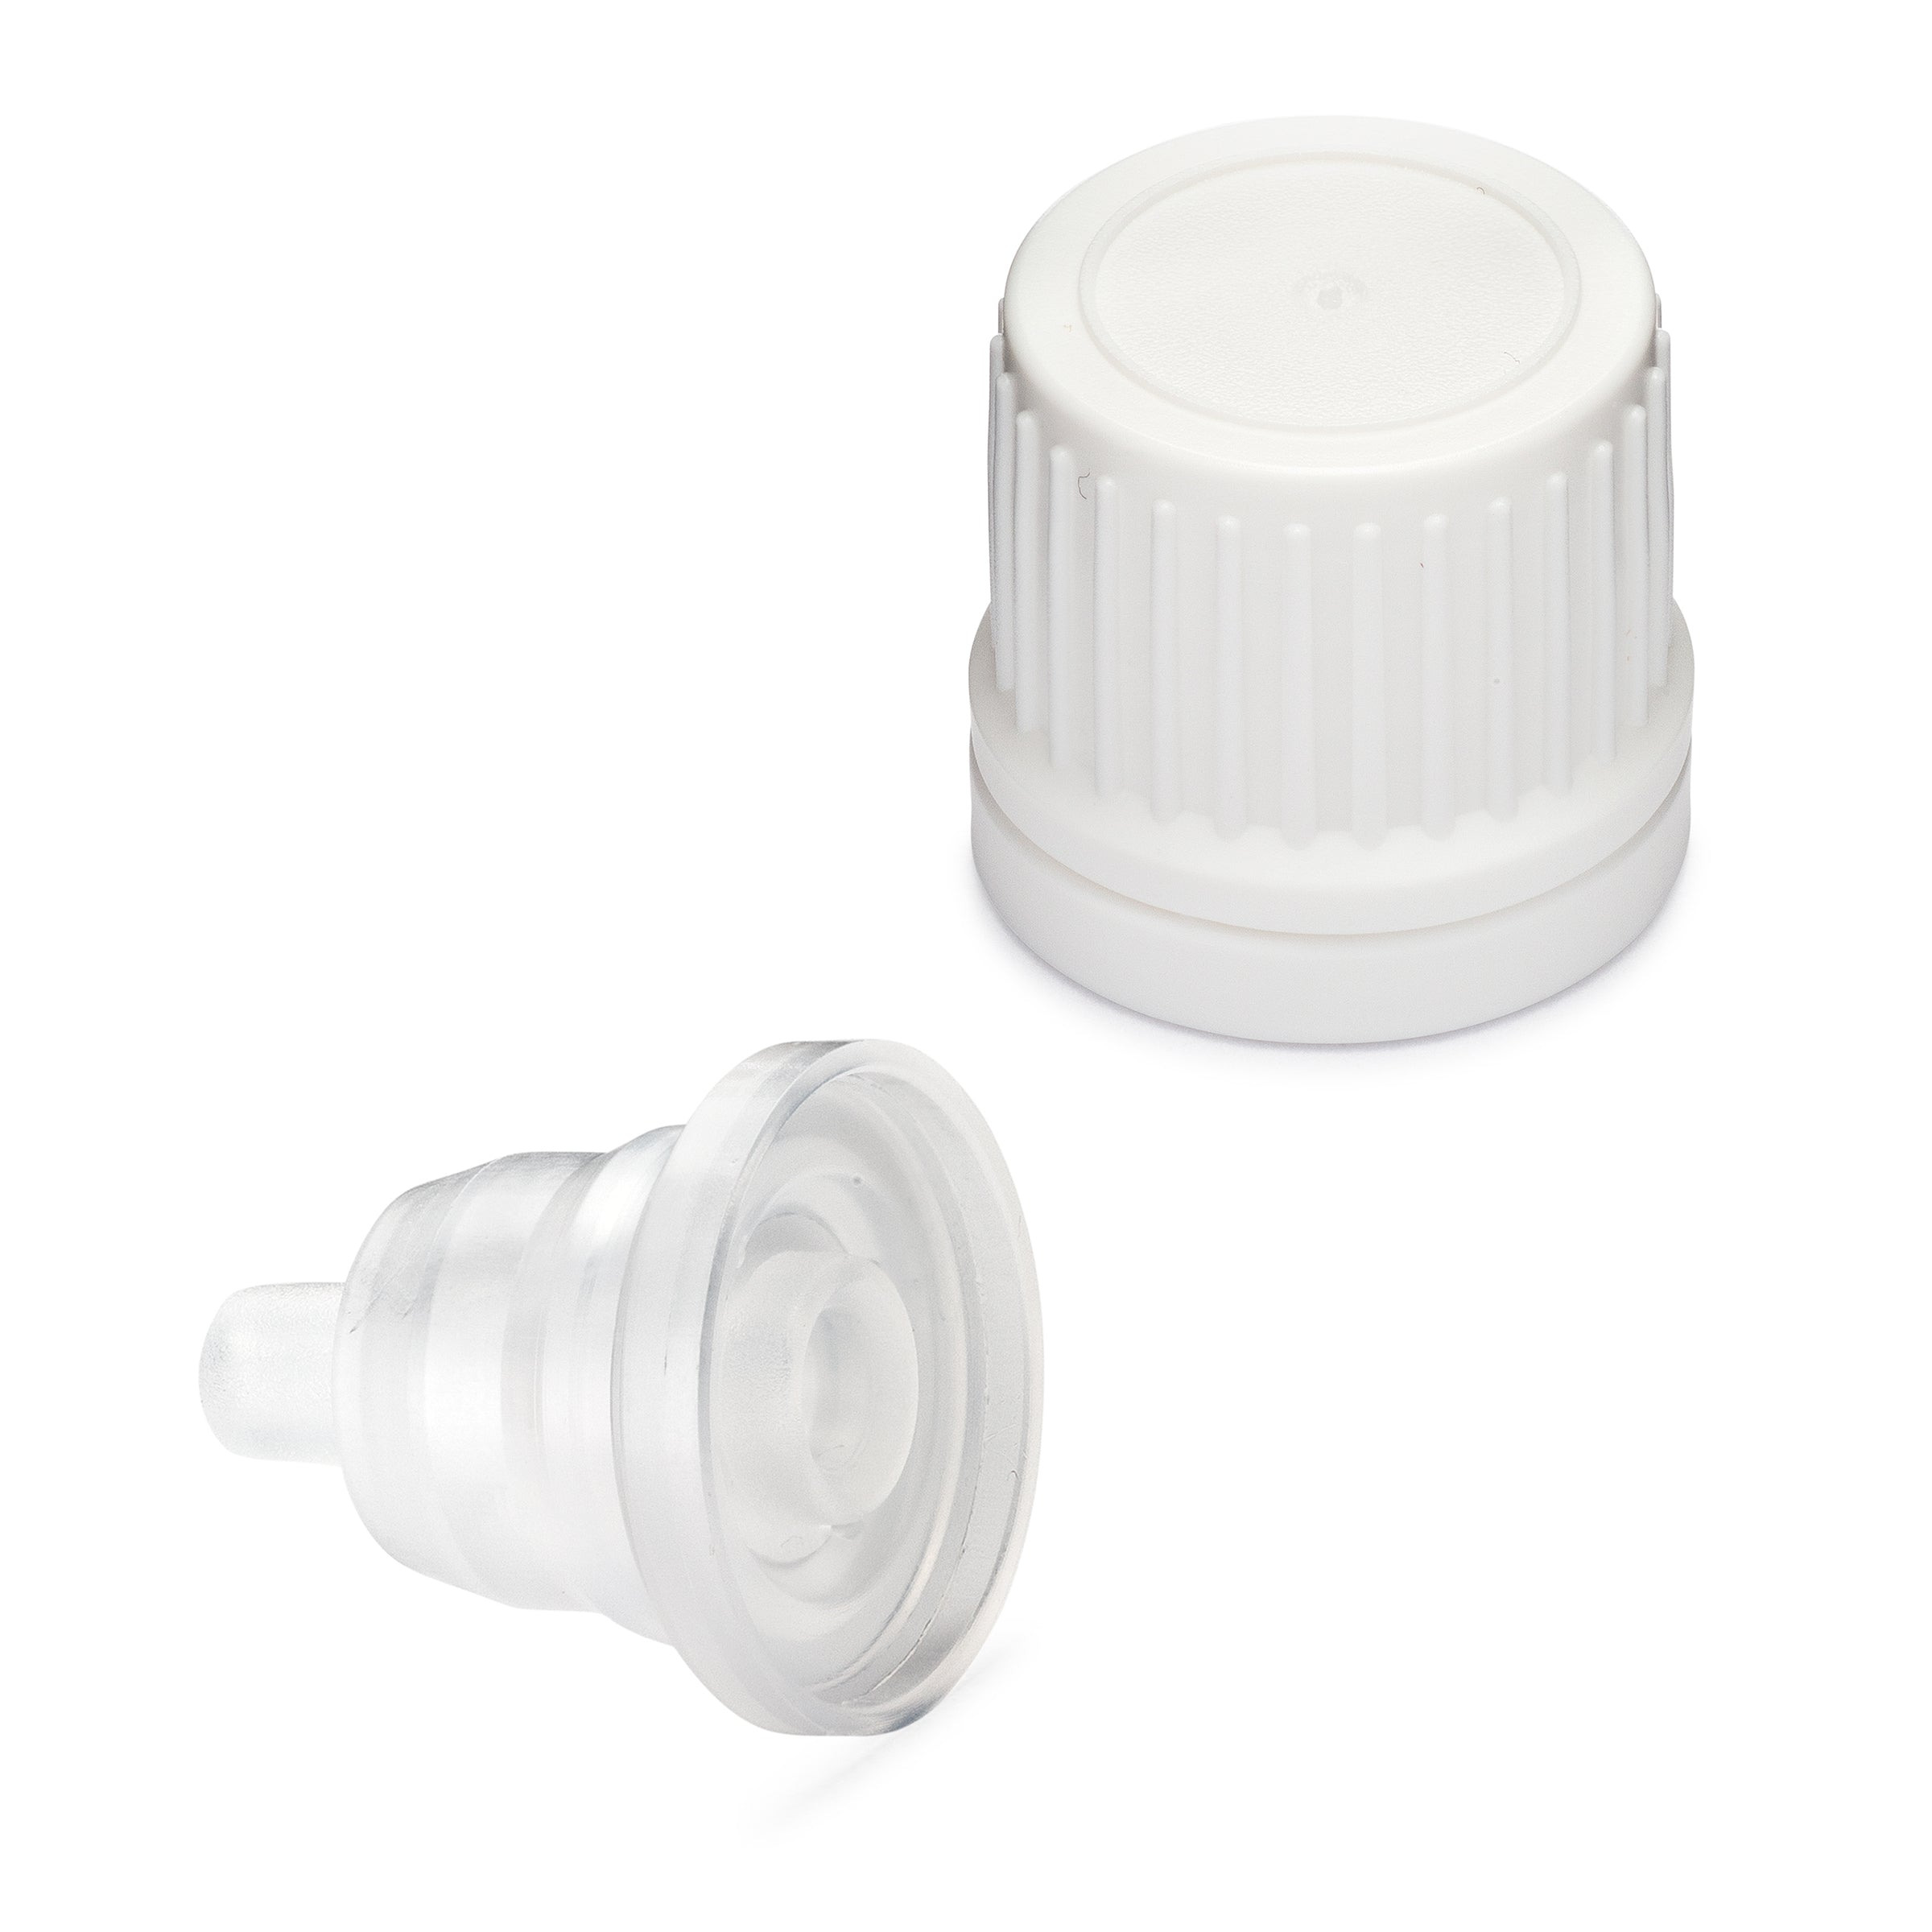 Tamper Evident EuroDrop Cap assembled to 0.80mm Horizontal Dropper Insert